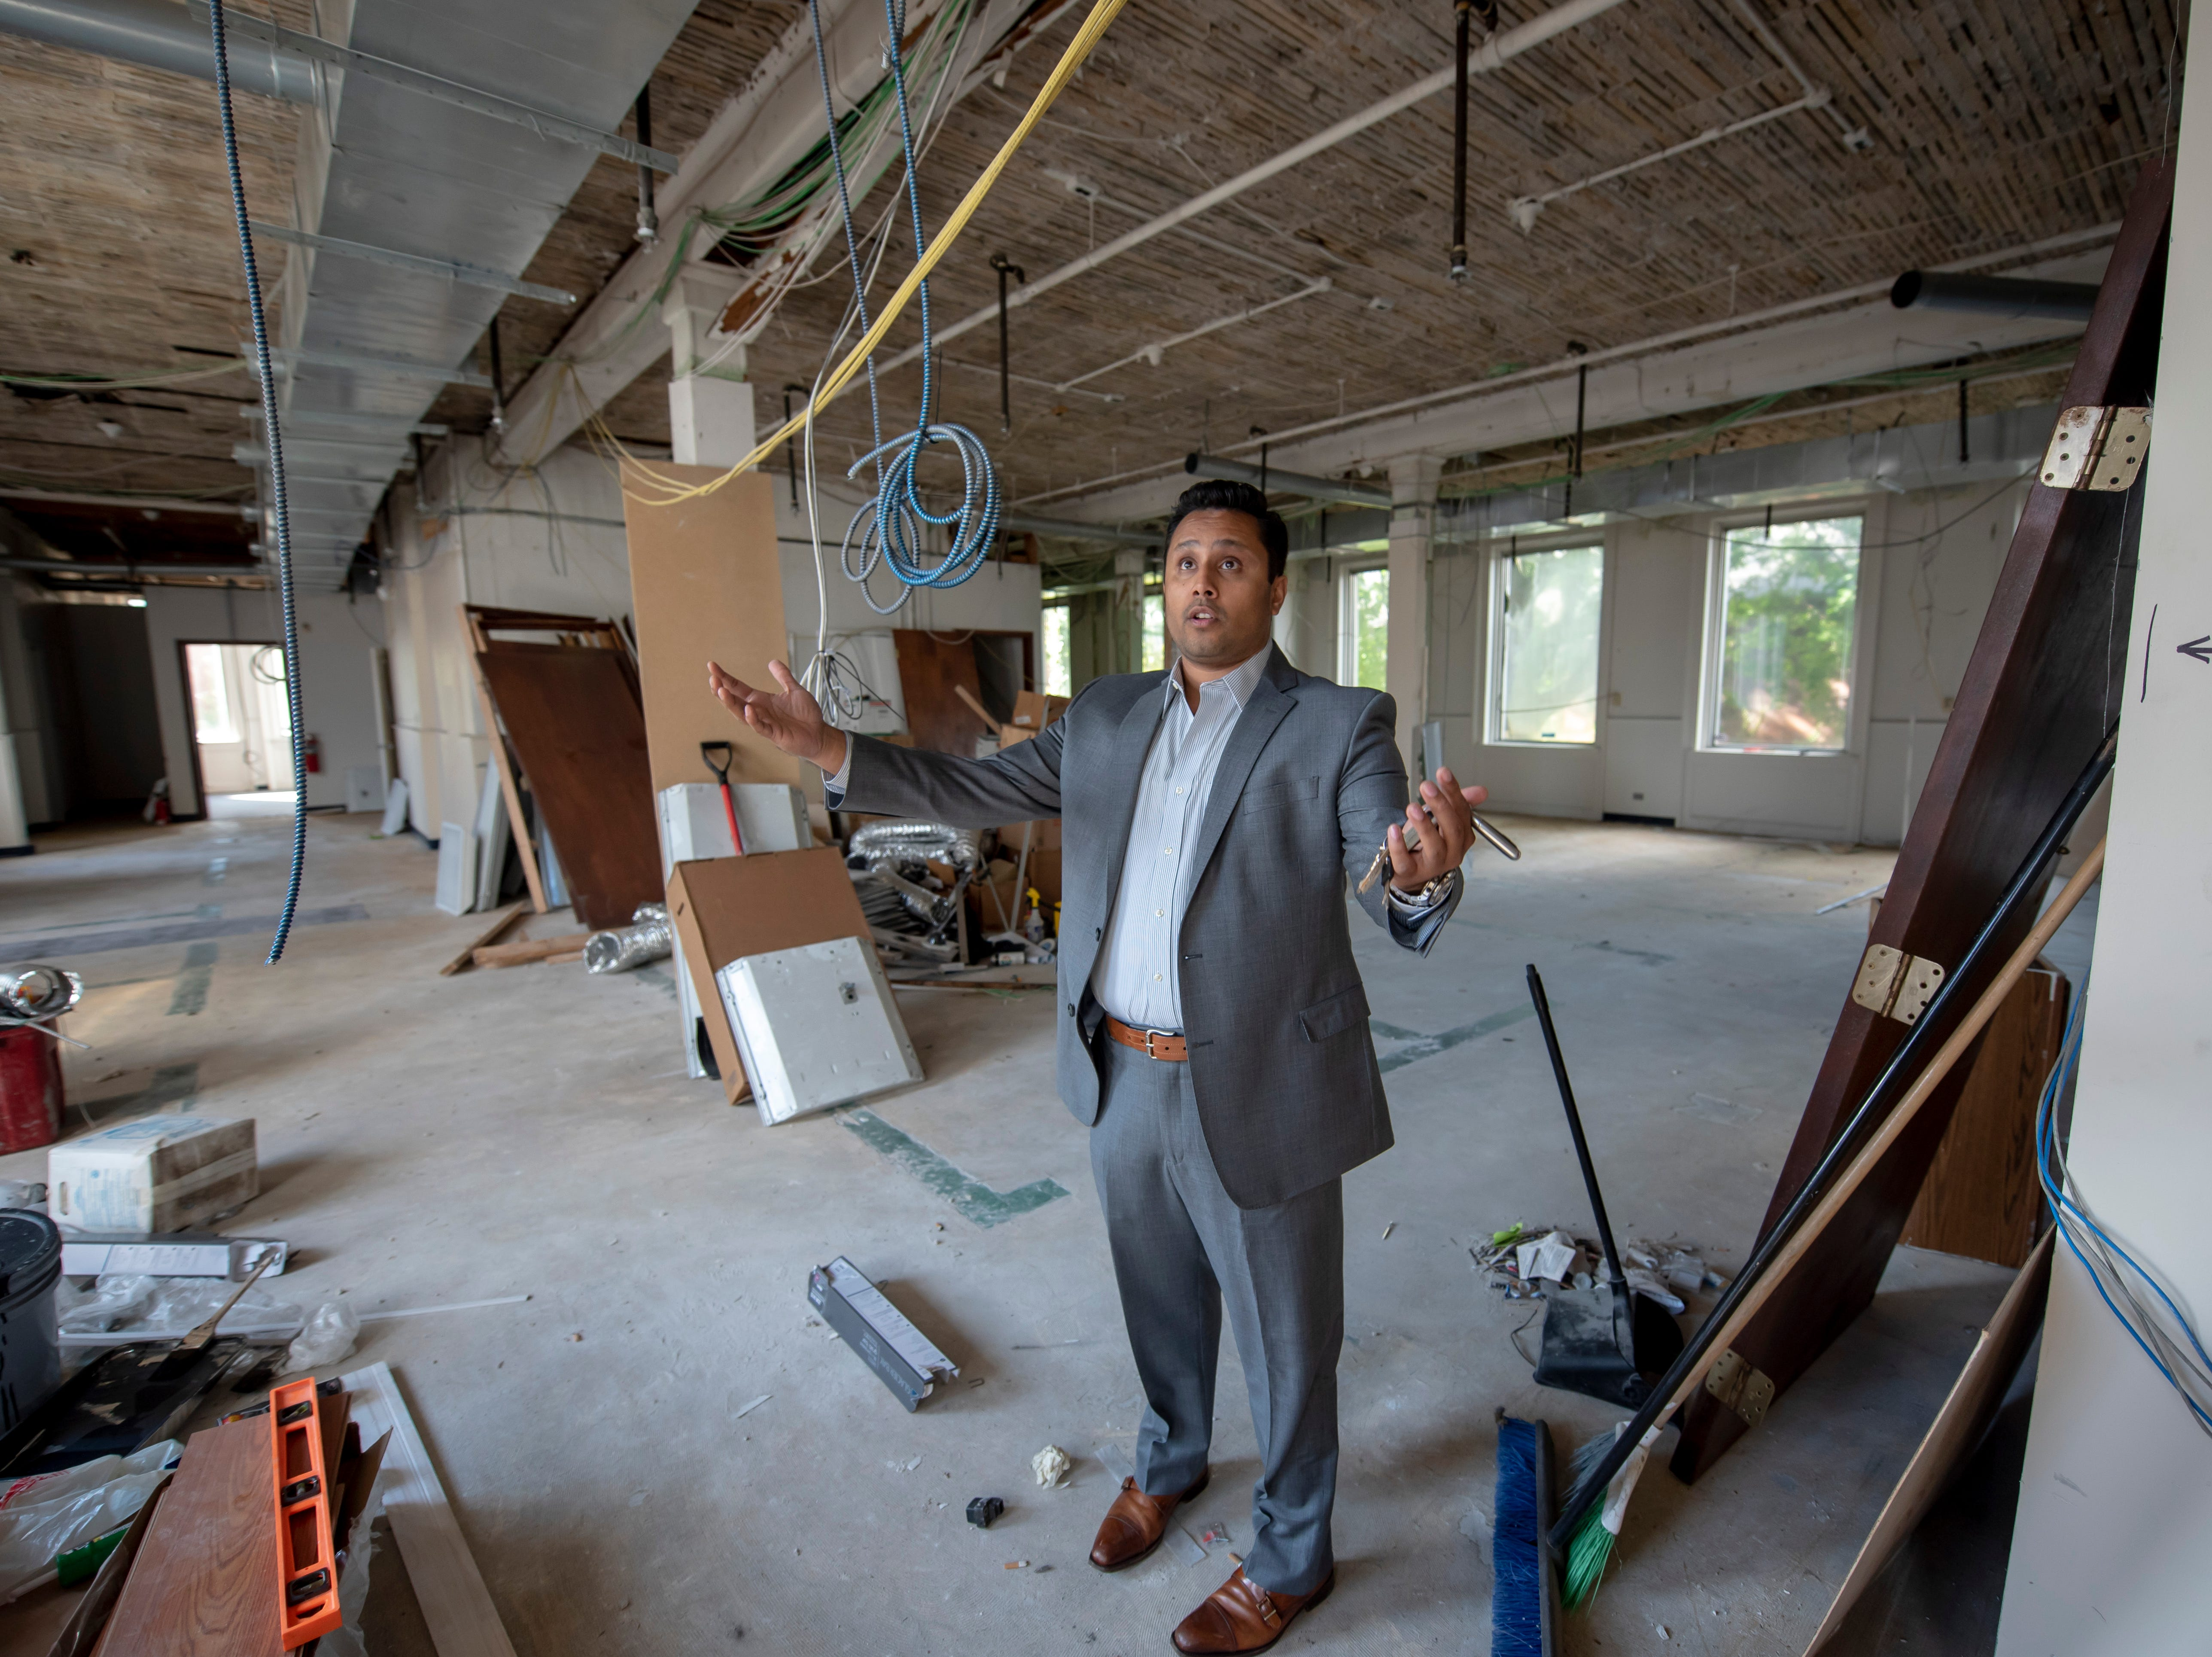 Rush Hasan, operations and business development for The Reef, stands inside the former Port of Detroit building that is slated to be the company's new location.